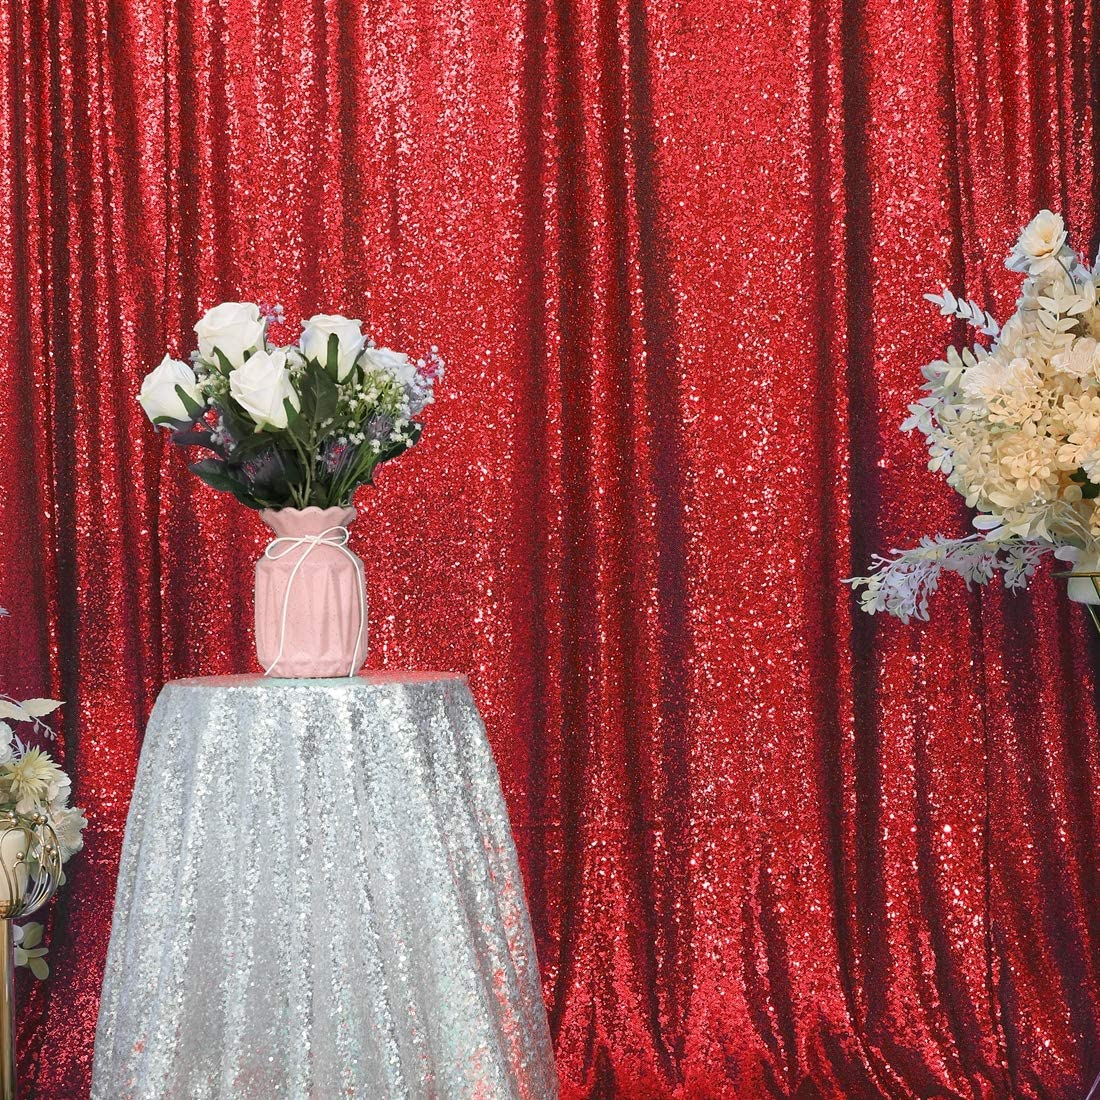 SquarePie Sequin Backdrop 20FT x 20FT Red Photography Background Sparkly  Curtain Selfie Wall for Wedding Party Decoration